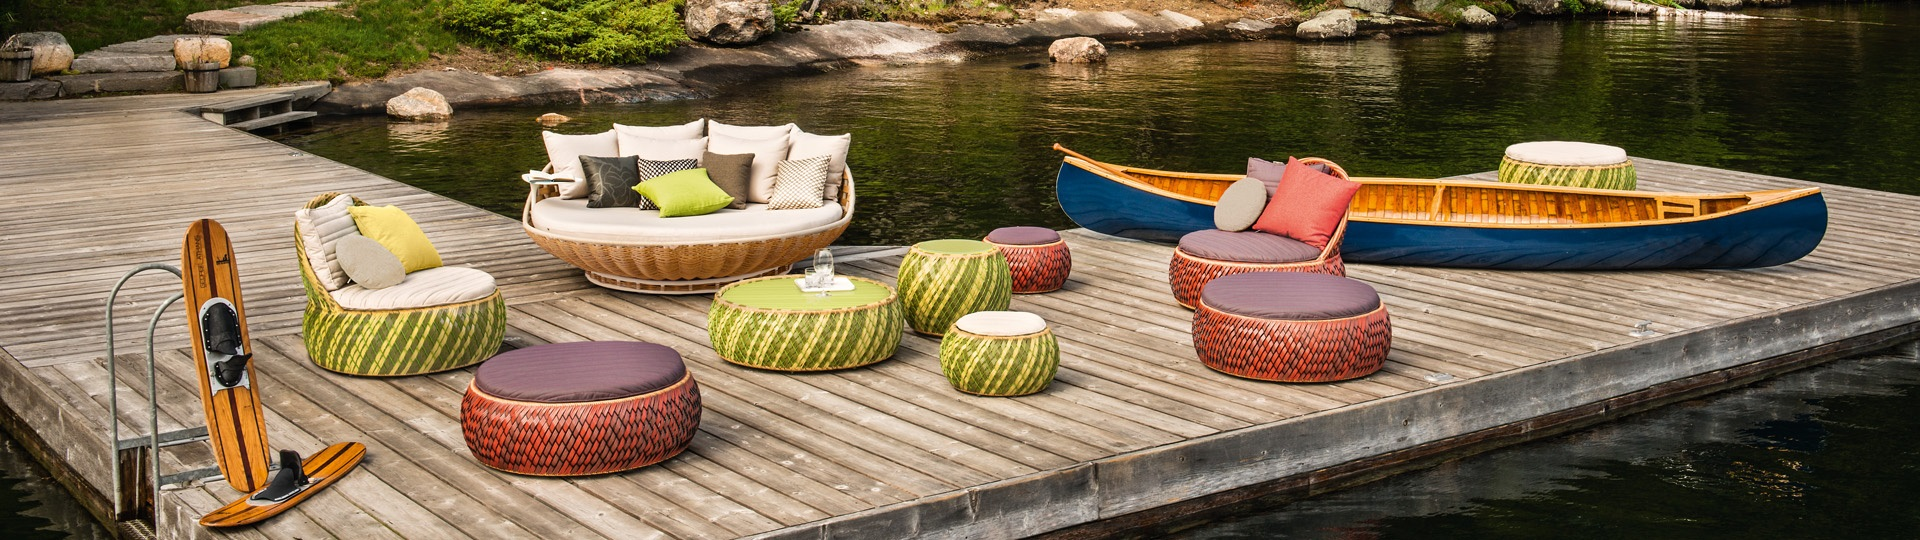 DEDON Products - Dedon outdoor furniture